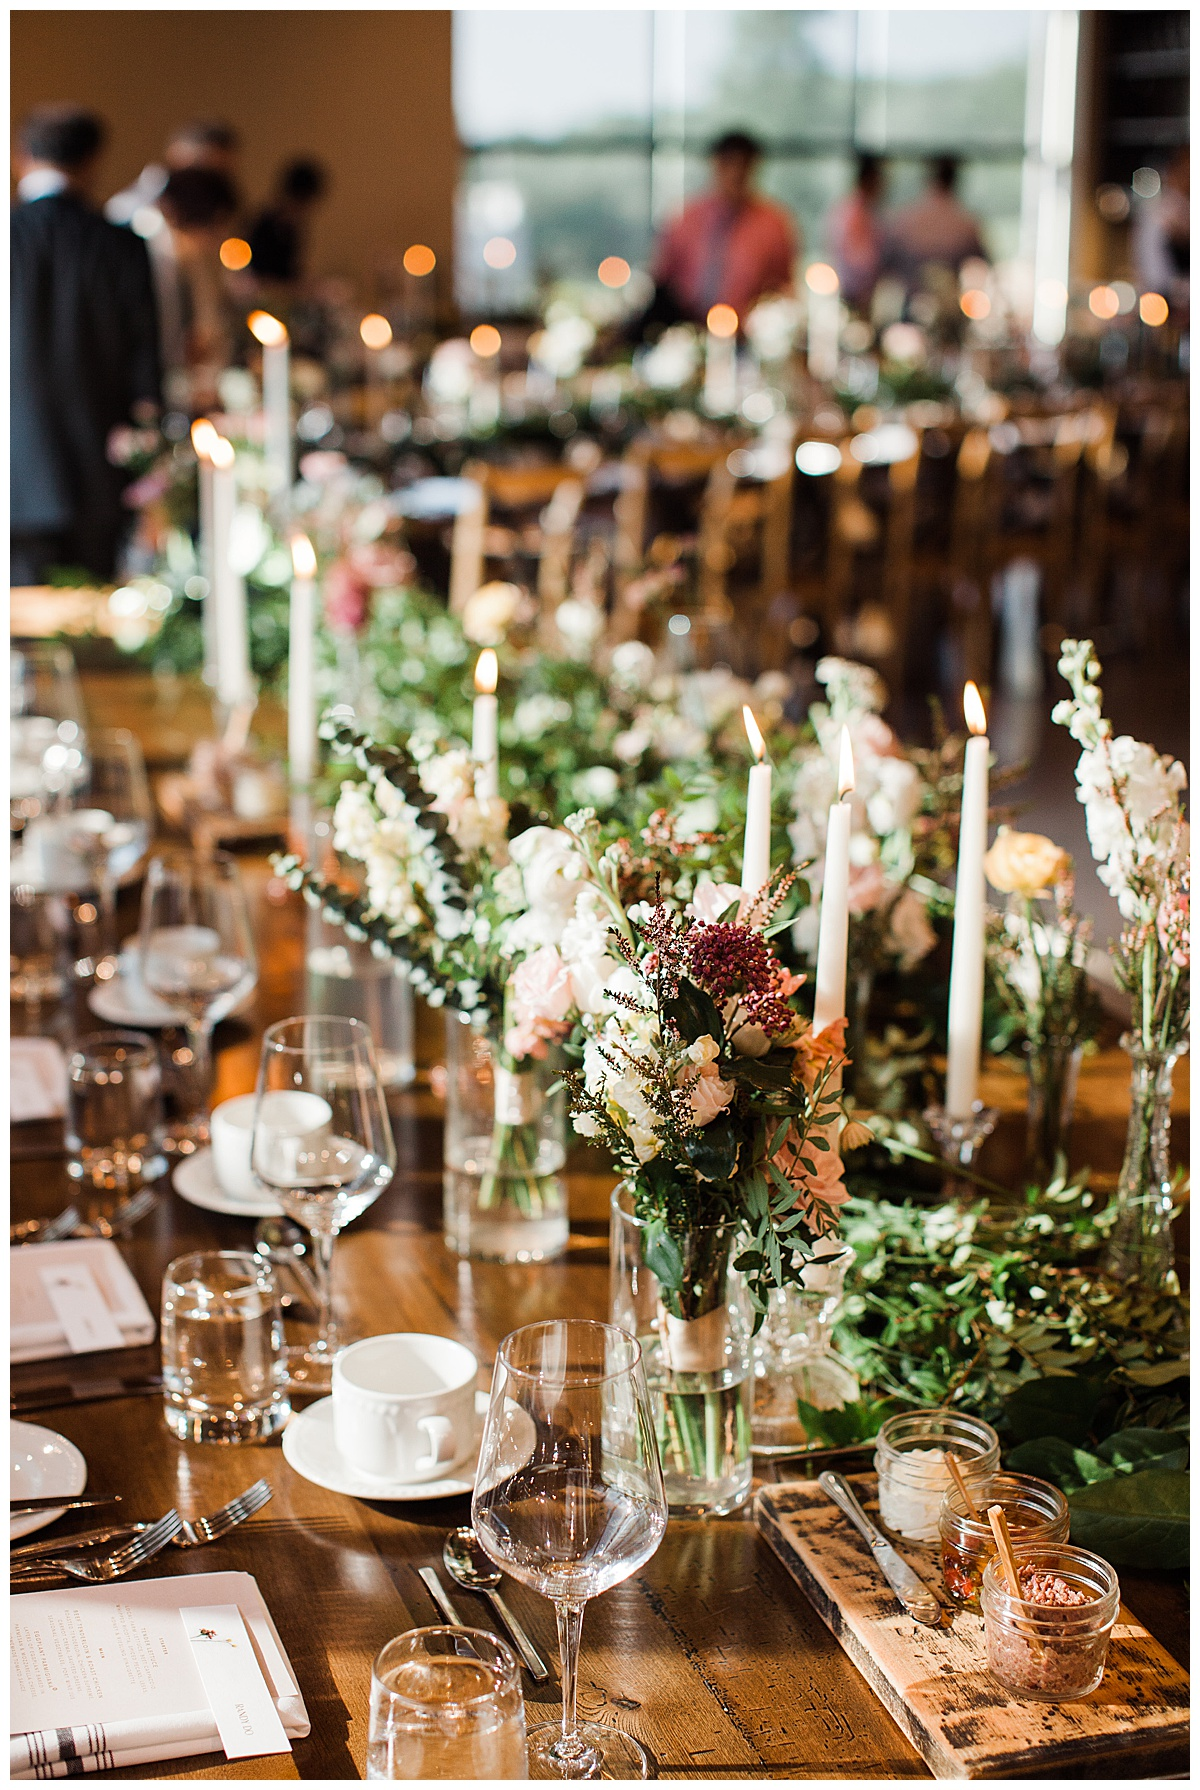 Beautiful table setup at winery wedding reception| Candlesticks and floral centerpieces at winery wedding| Candlelit dinner| Toronto photographer| 3photography